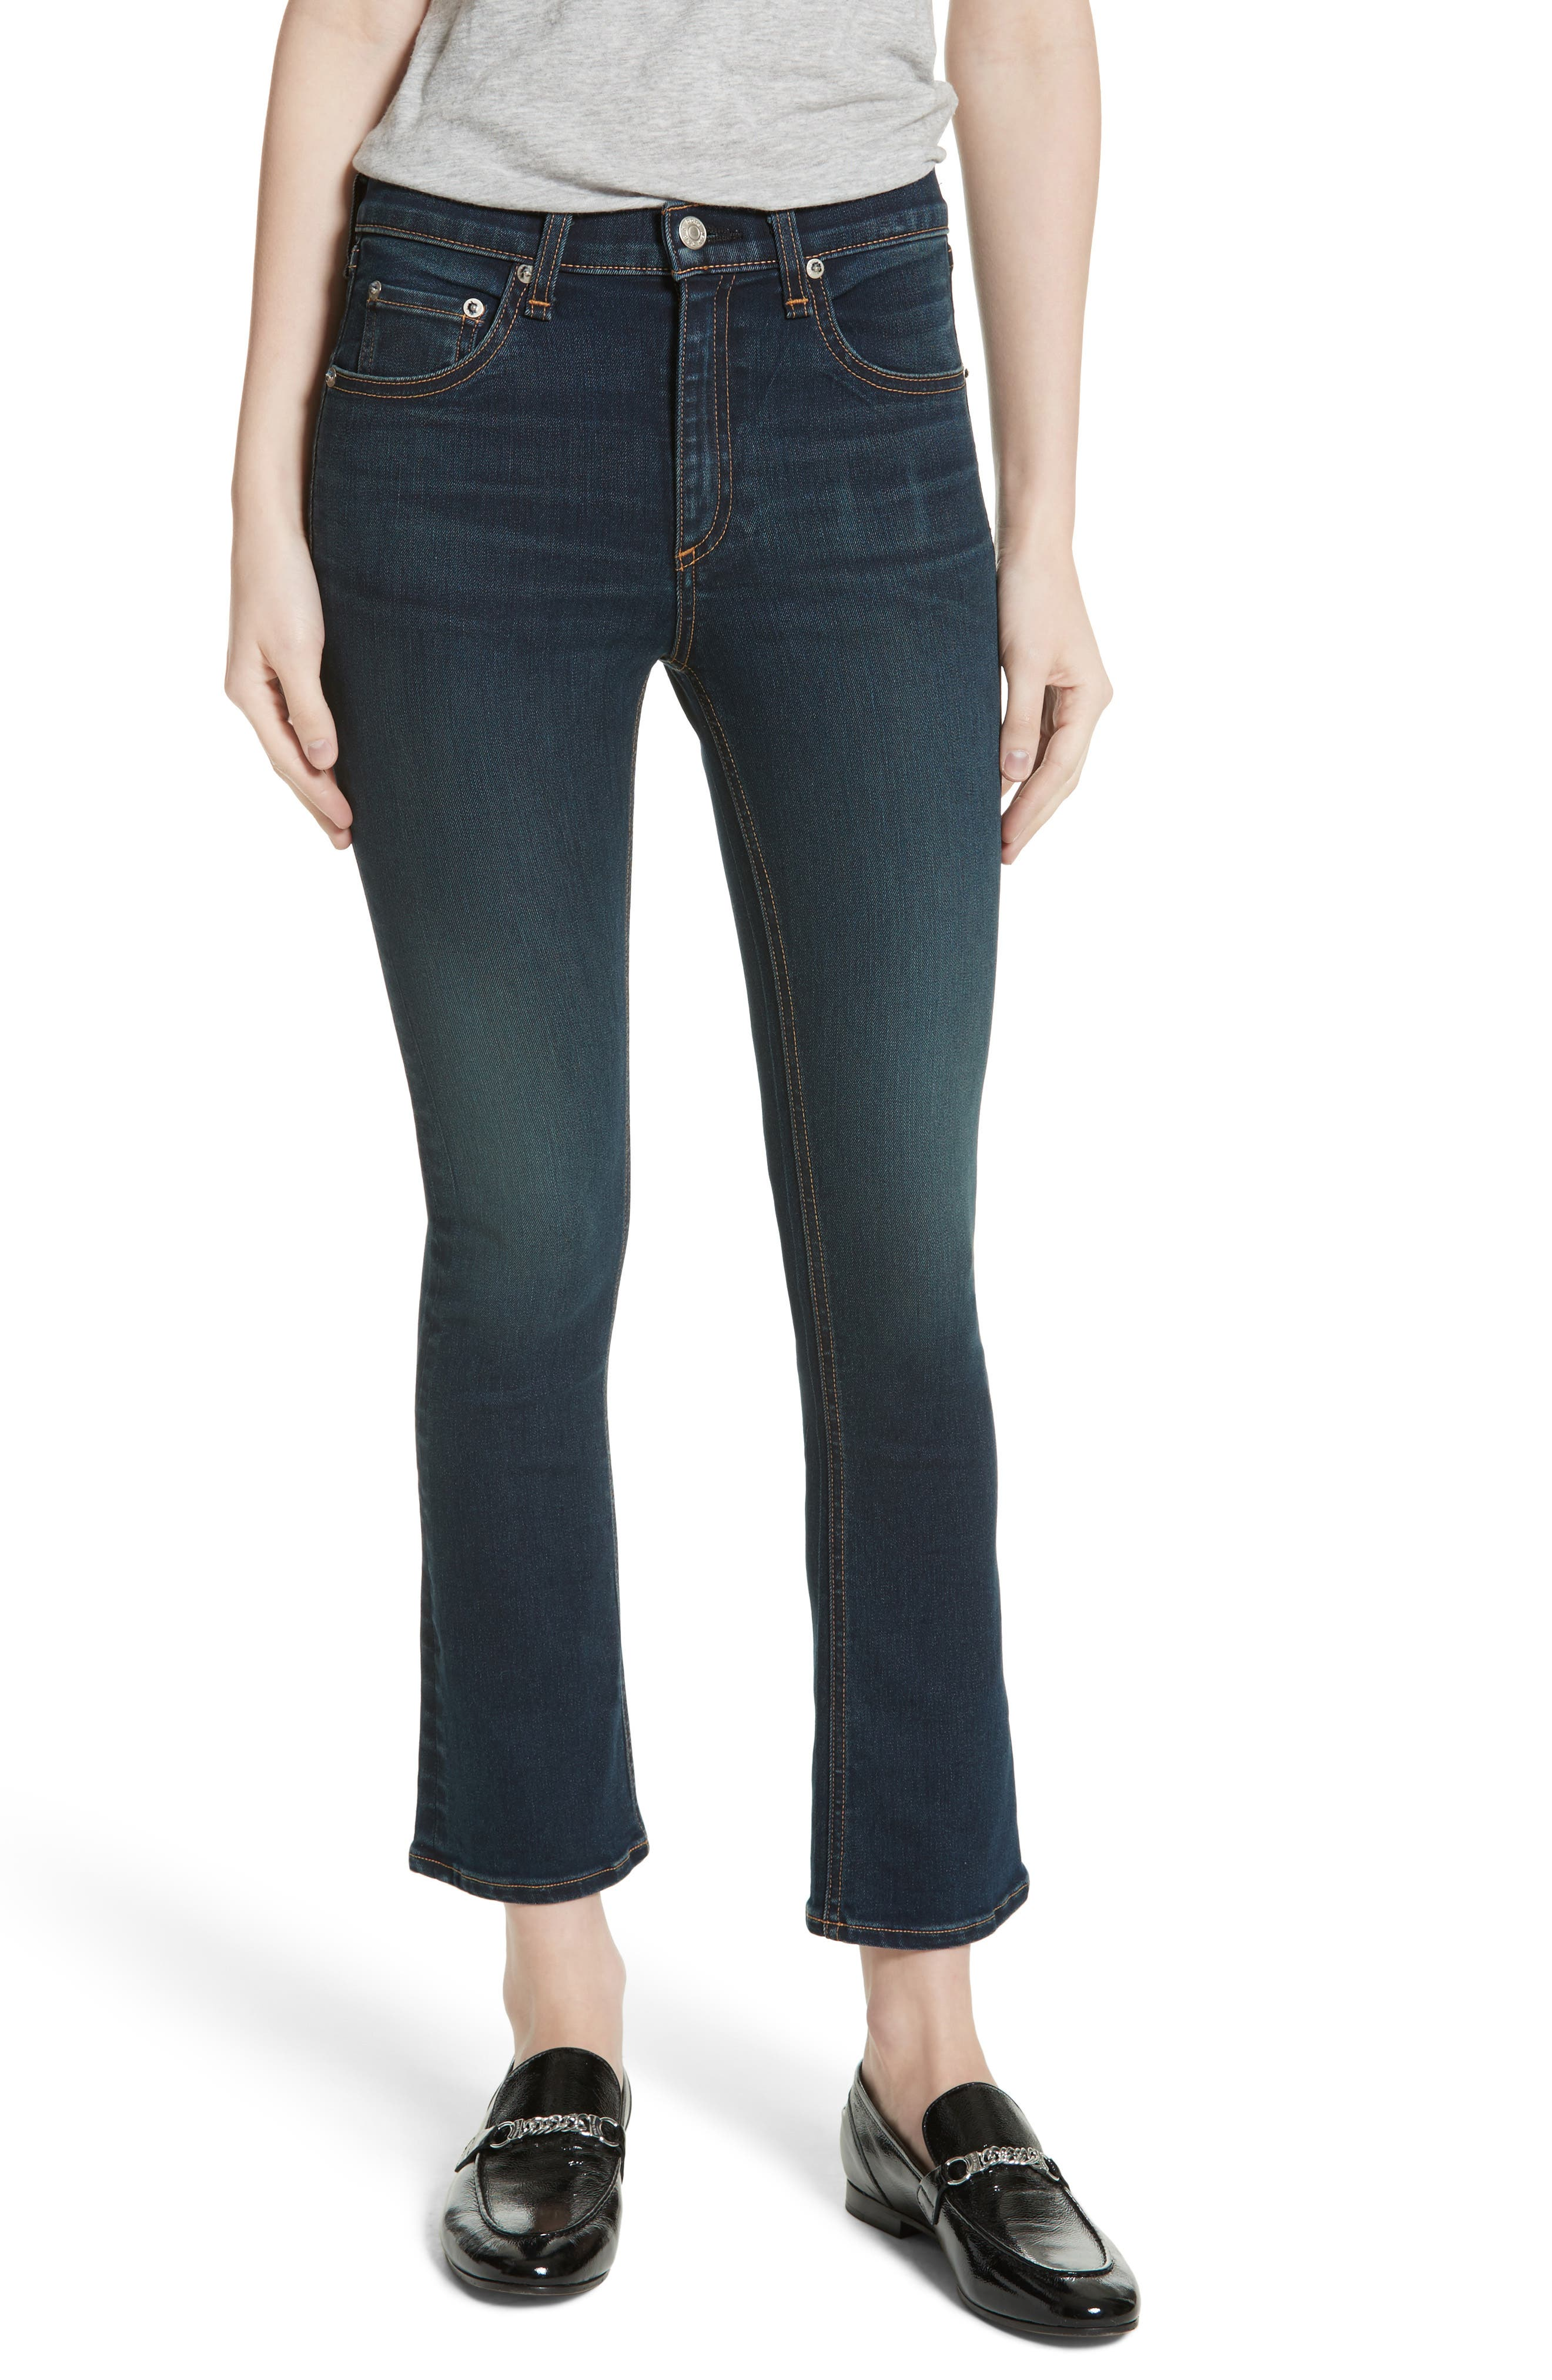 Alternate Image 1 Selected - rag & bone/JEAN Hana High Waist Crop Flare Jeans (Bedford)